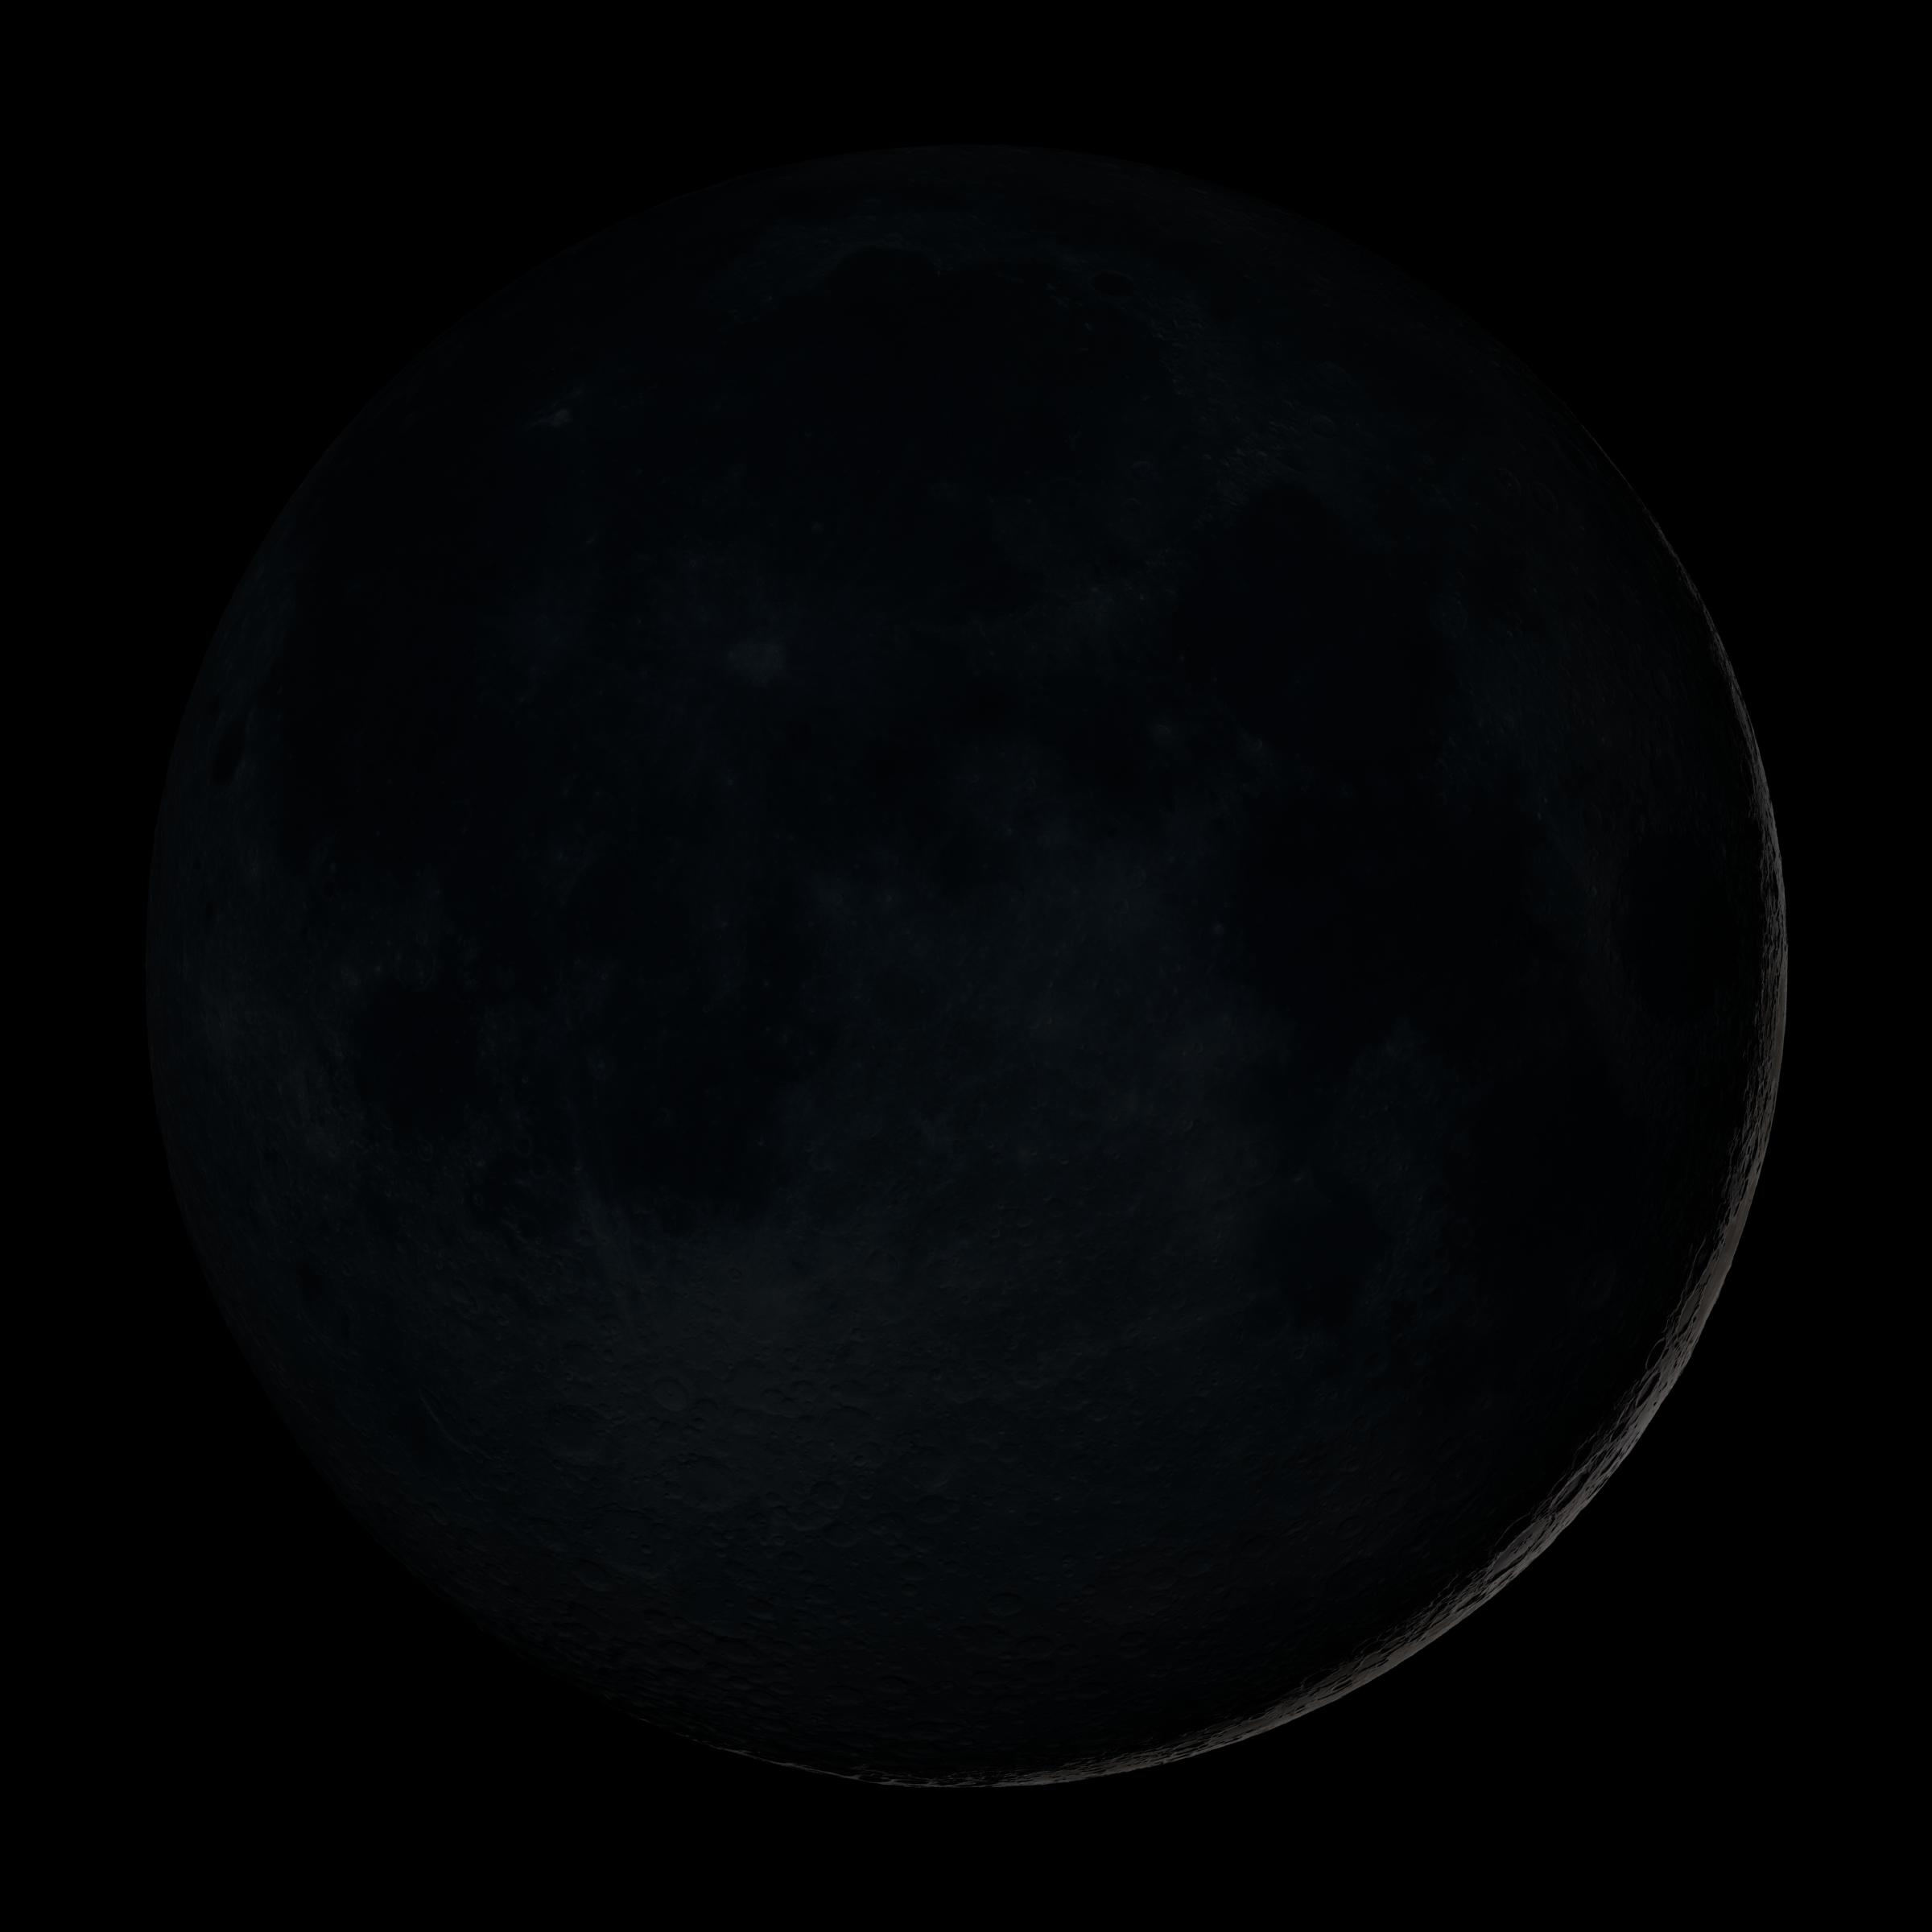 New moon - Wikipedia